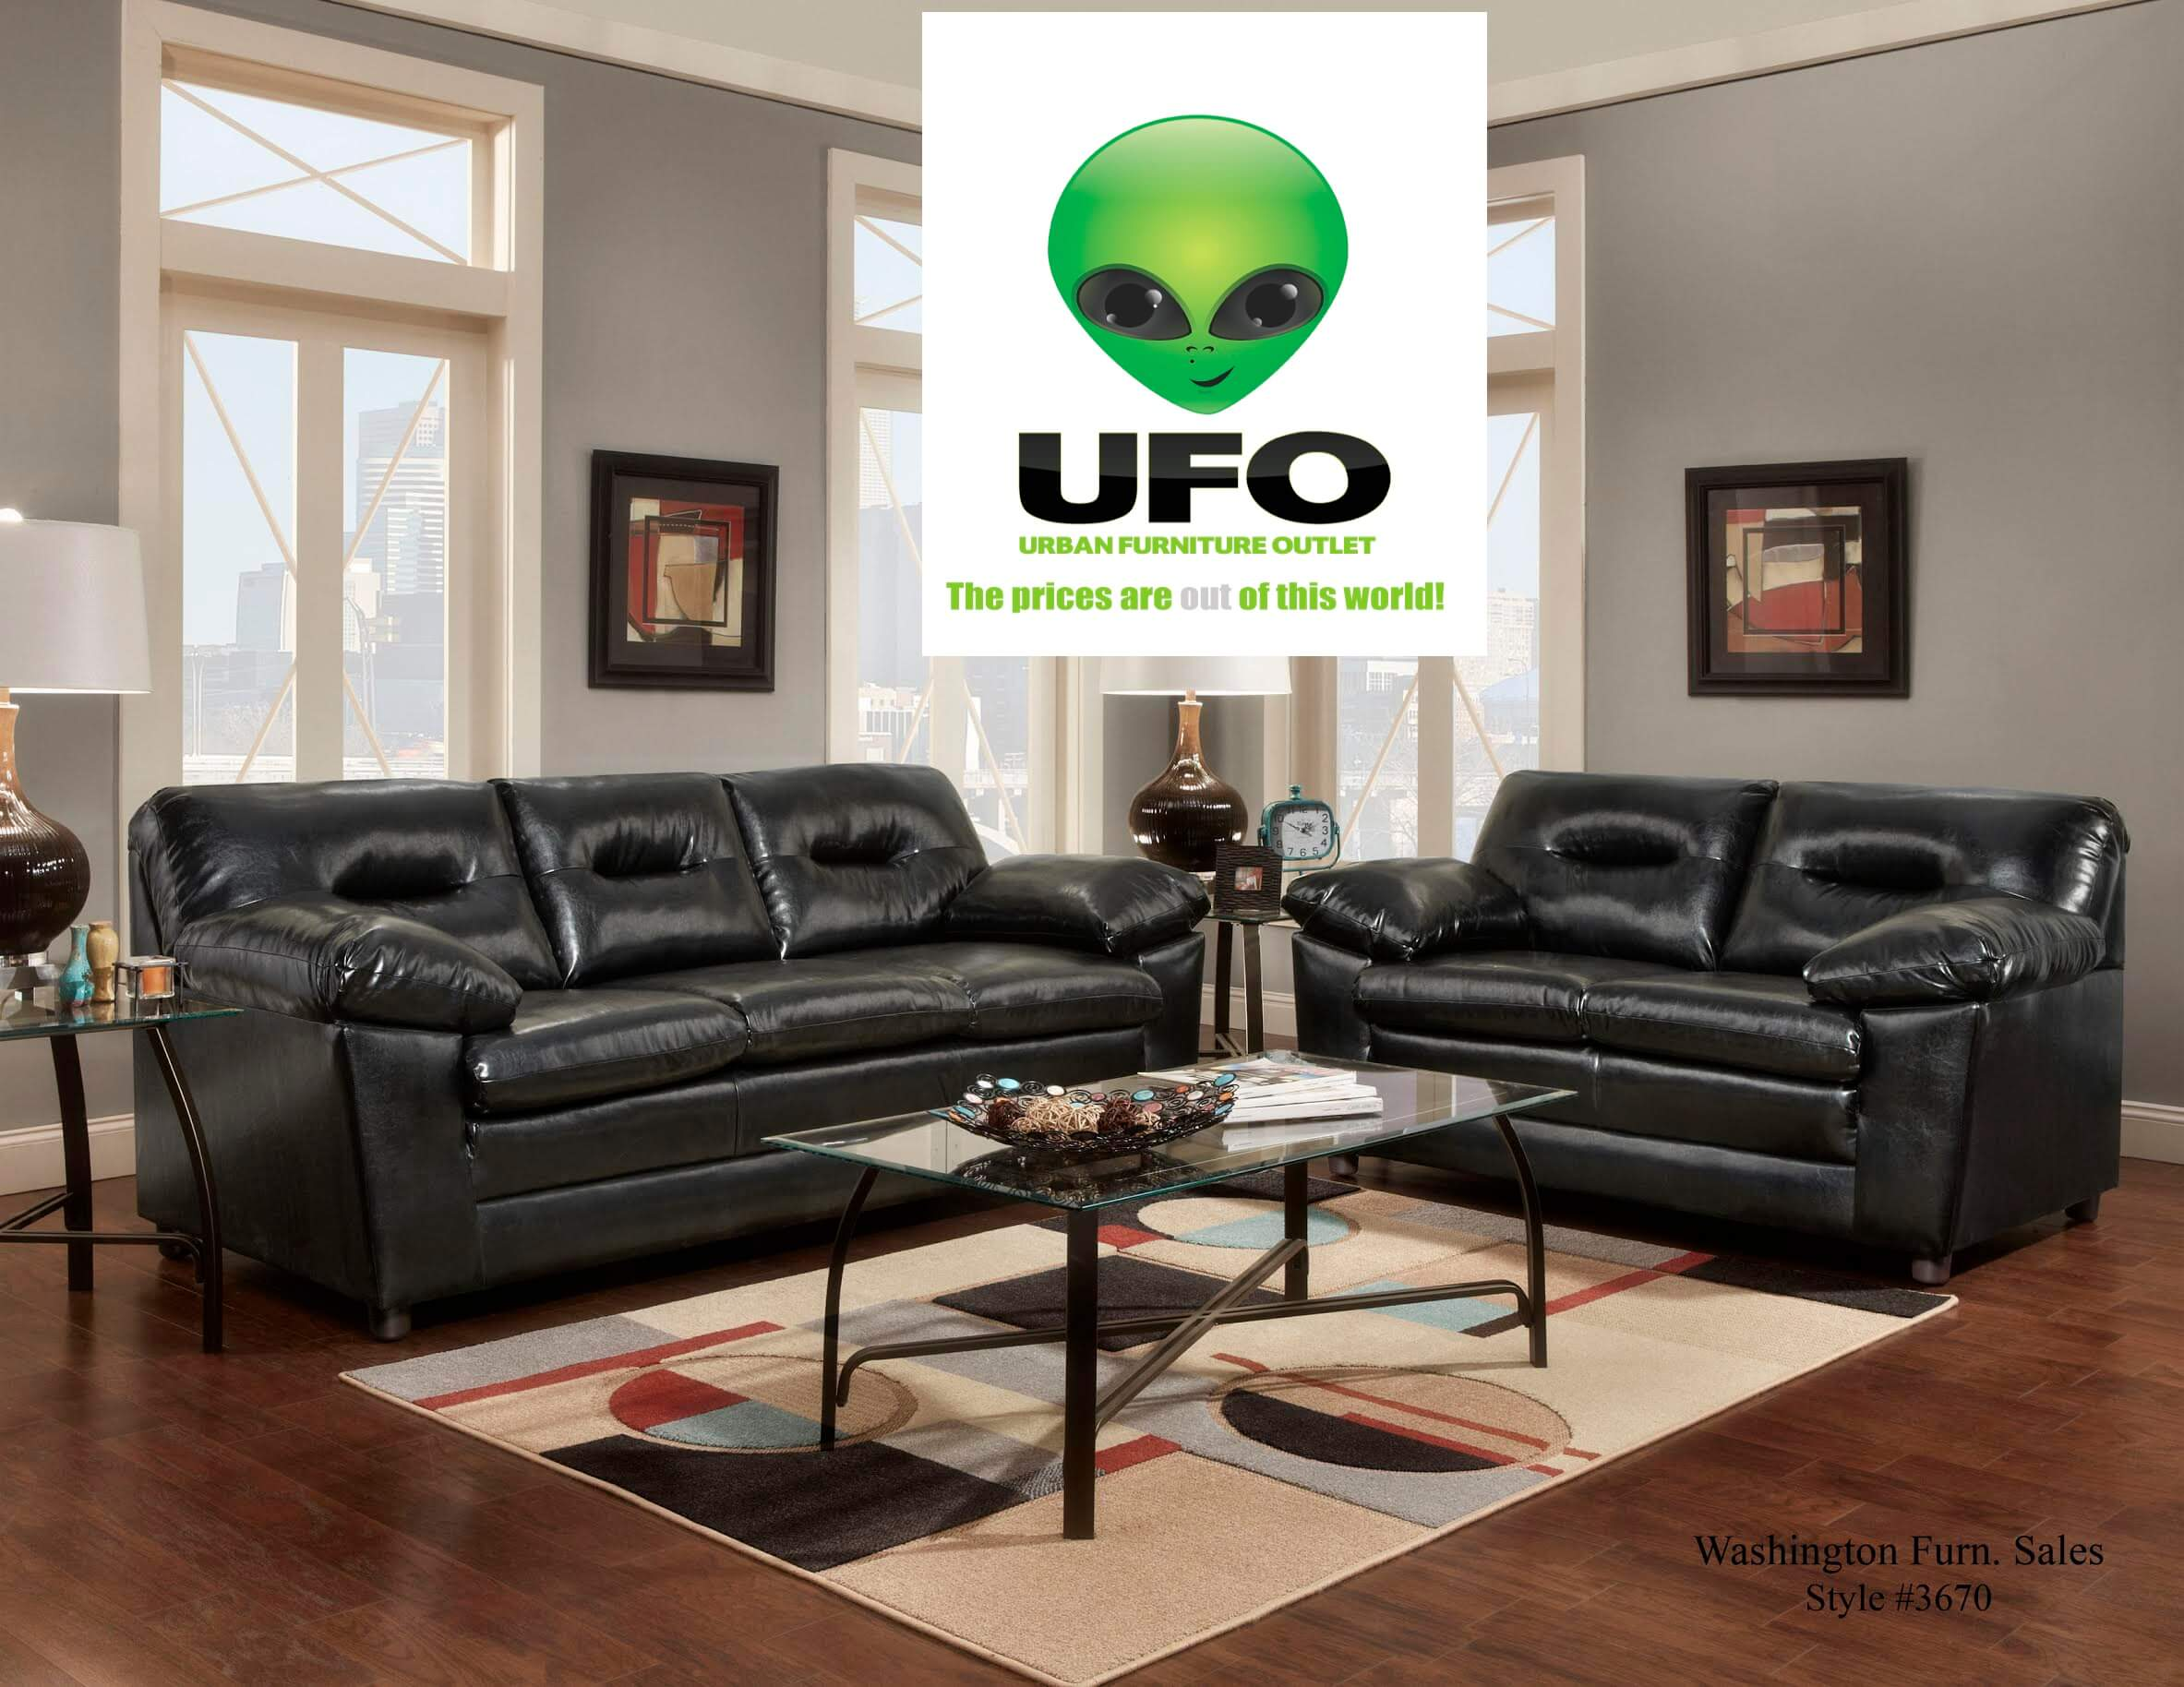 Beau Urban Furniture Outlet